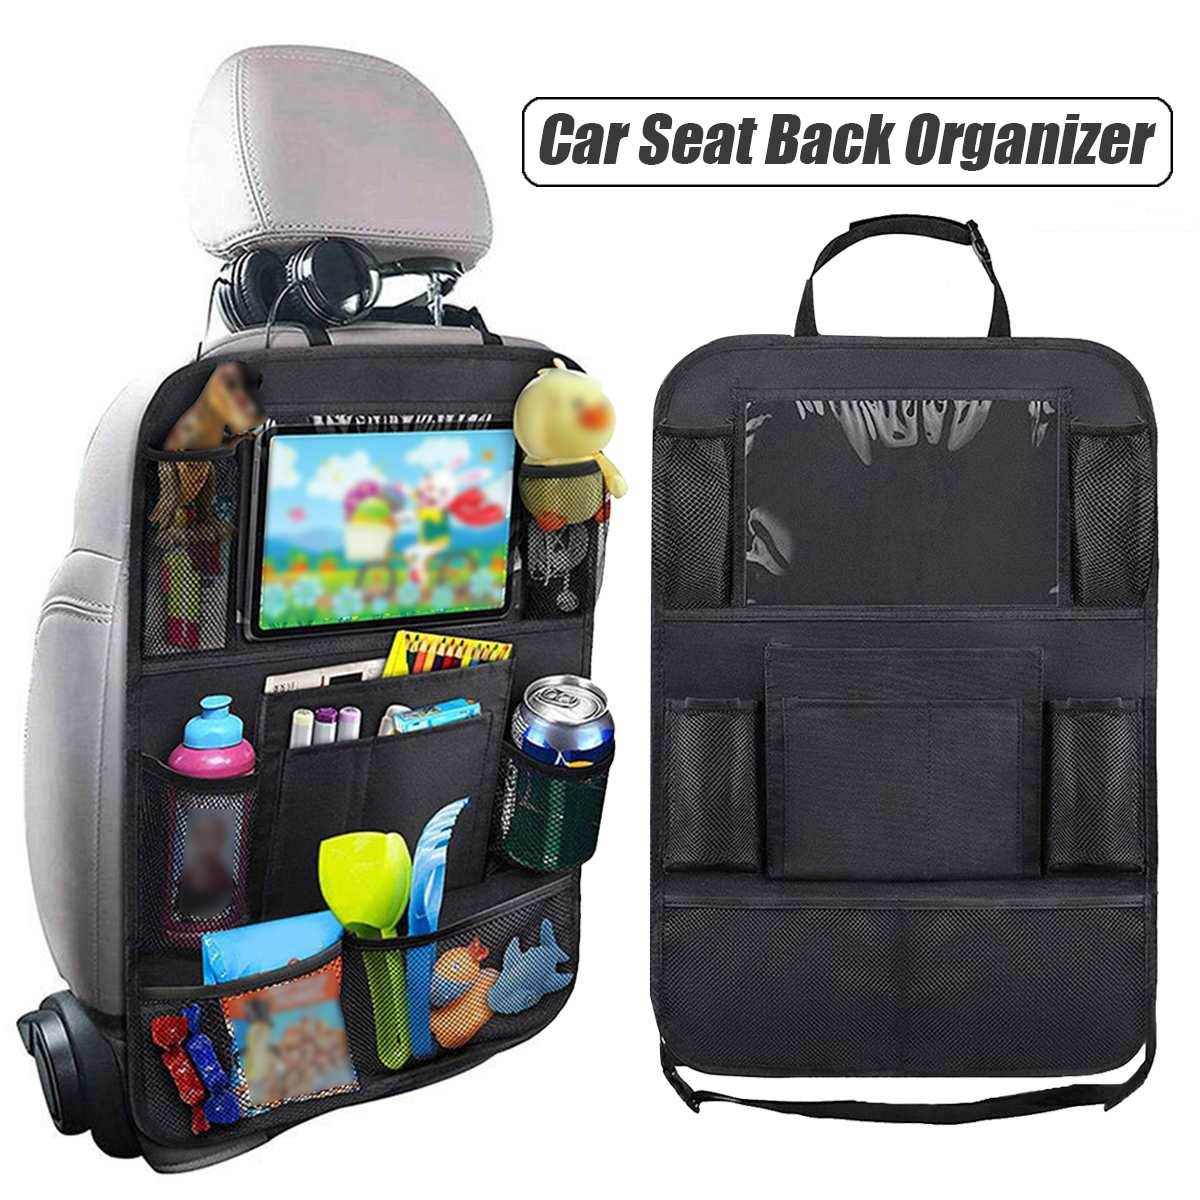 Car Rear Seat Back Organizer Storage Bag Oxford fabric Hanging Stowing Tidying Baby Kids Travel Universal Auto Multi-pocket Bag